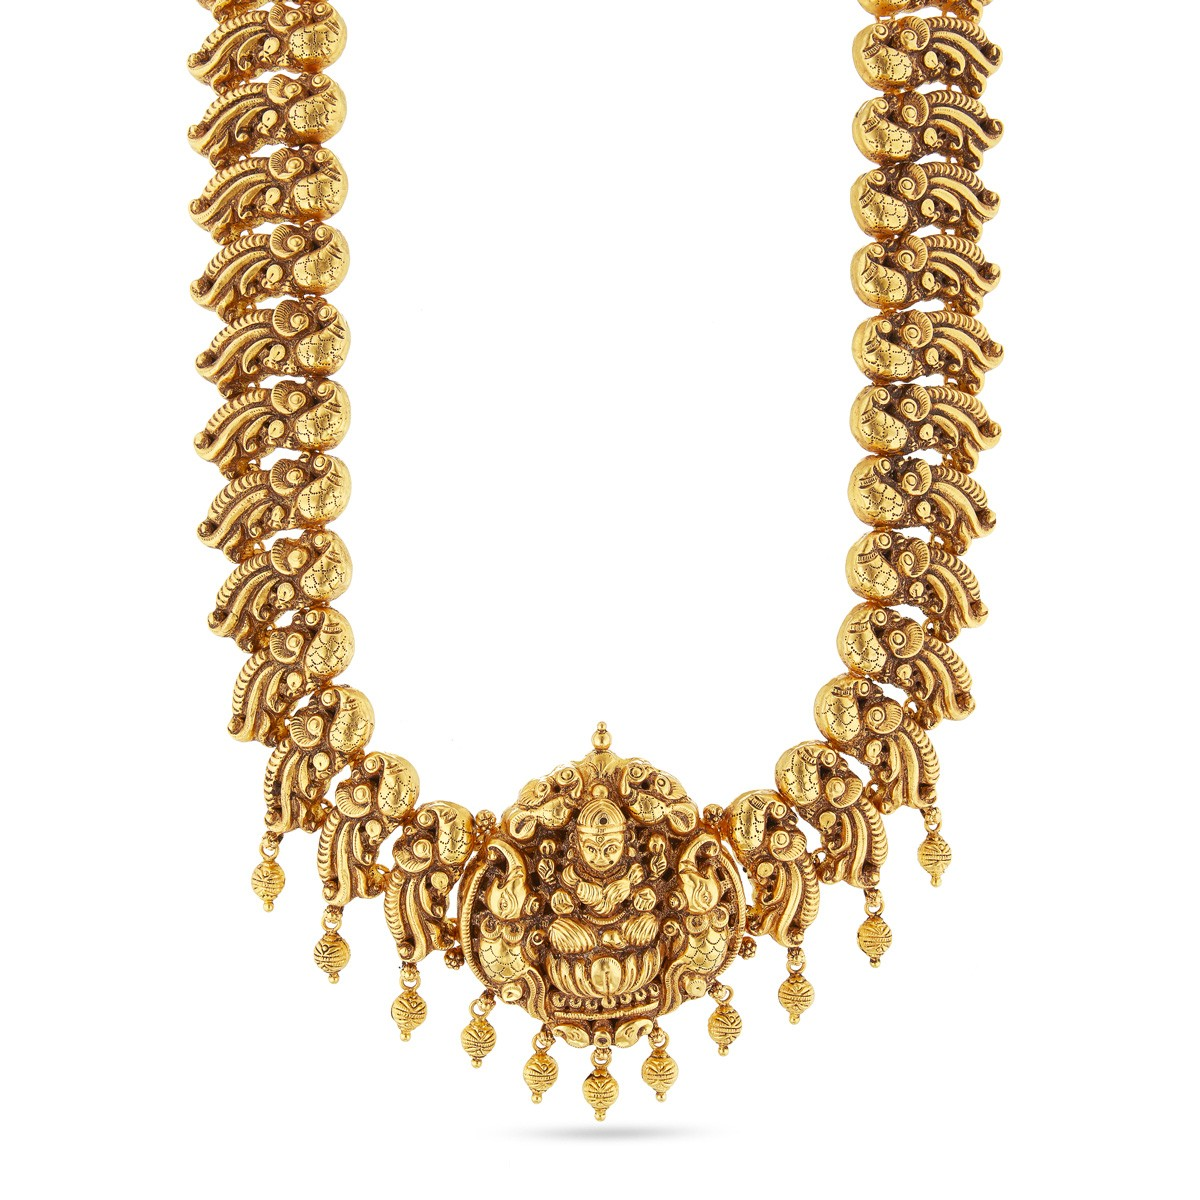 jewelsmart beads floral antique plated jalar jewellery necklace nakshi matte design mango gold premium collections